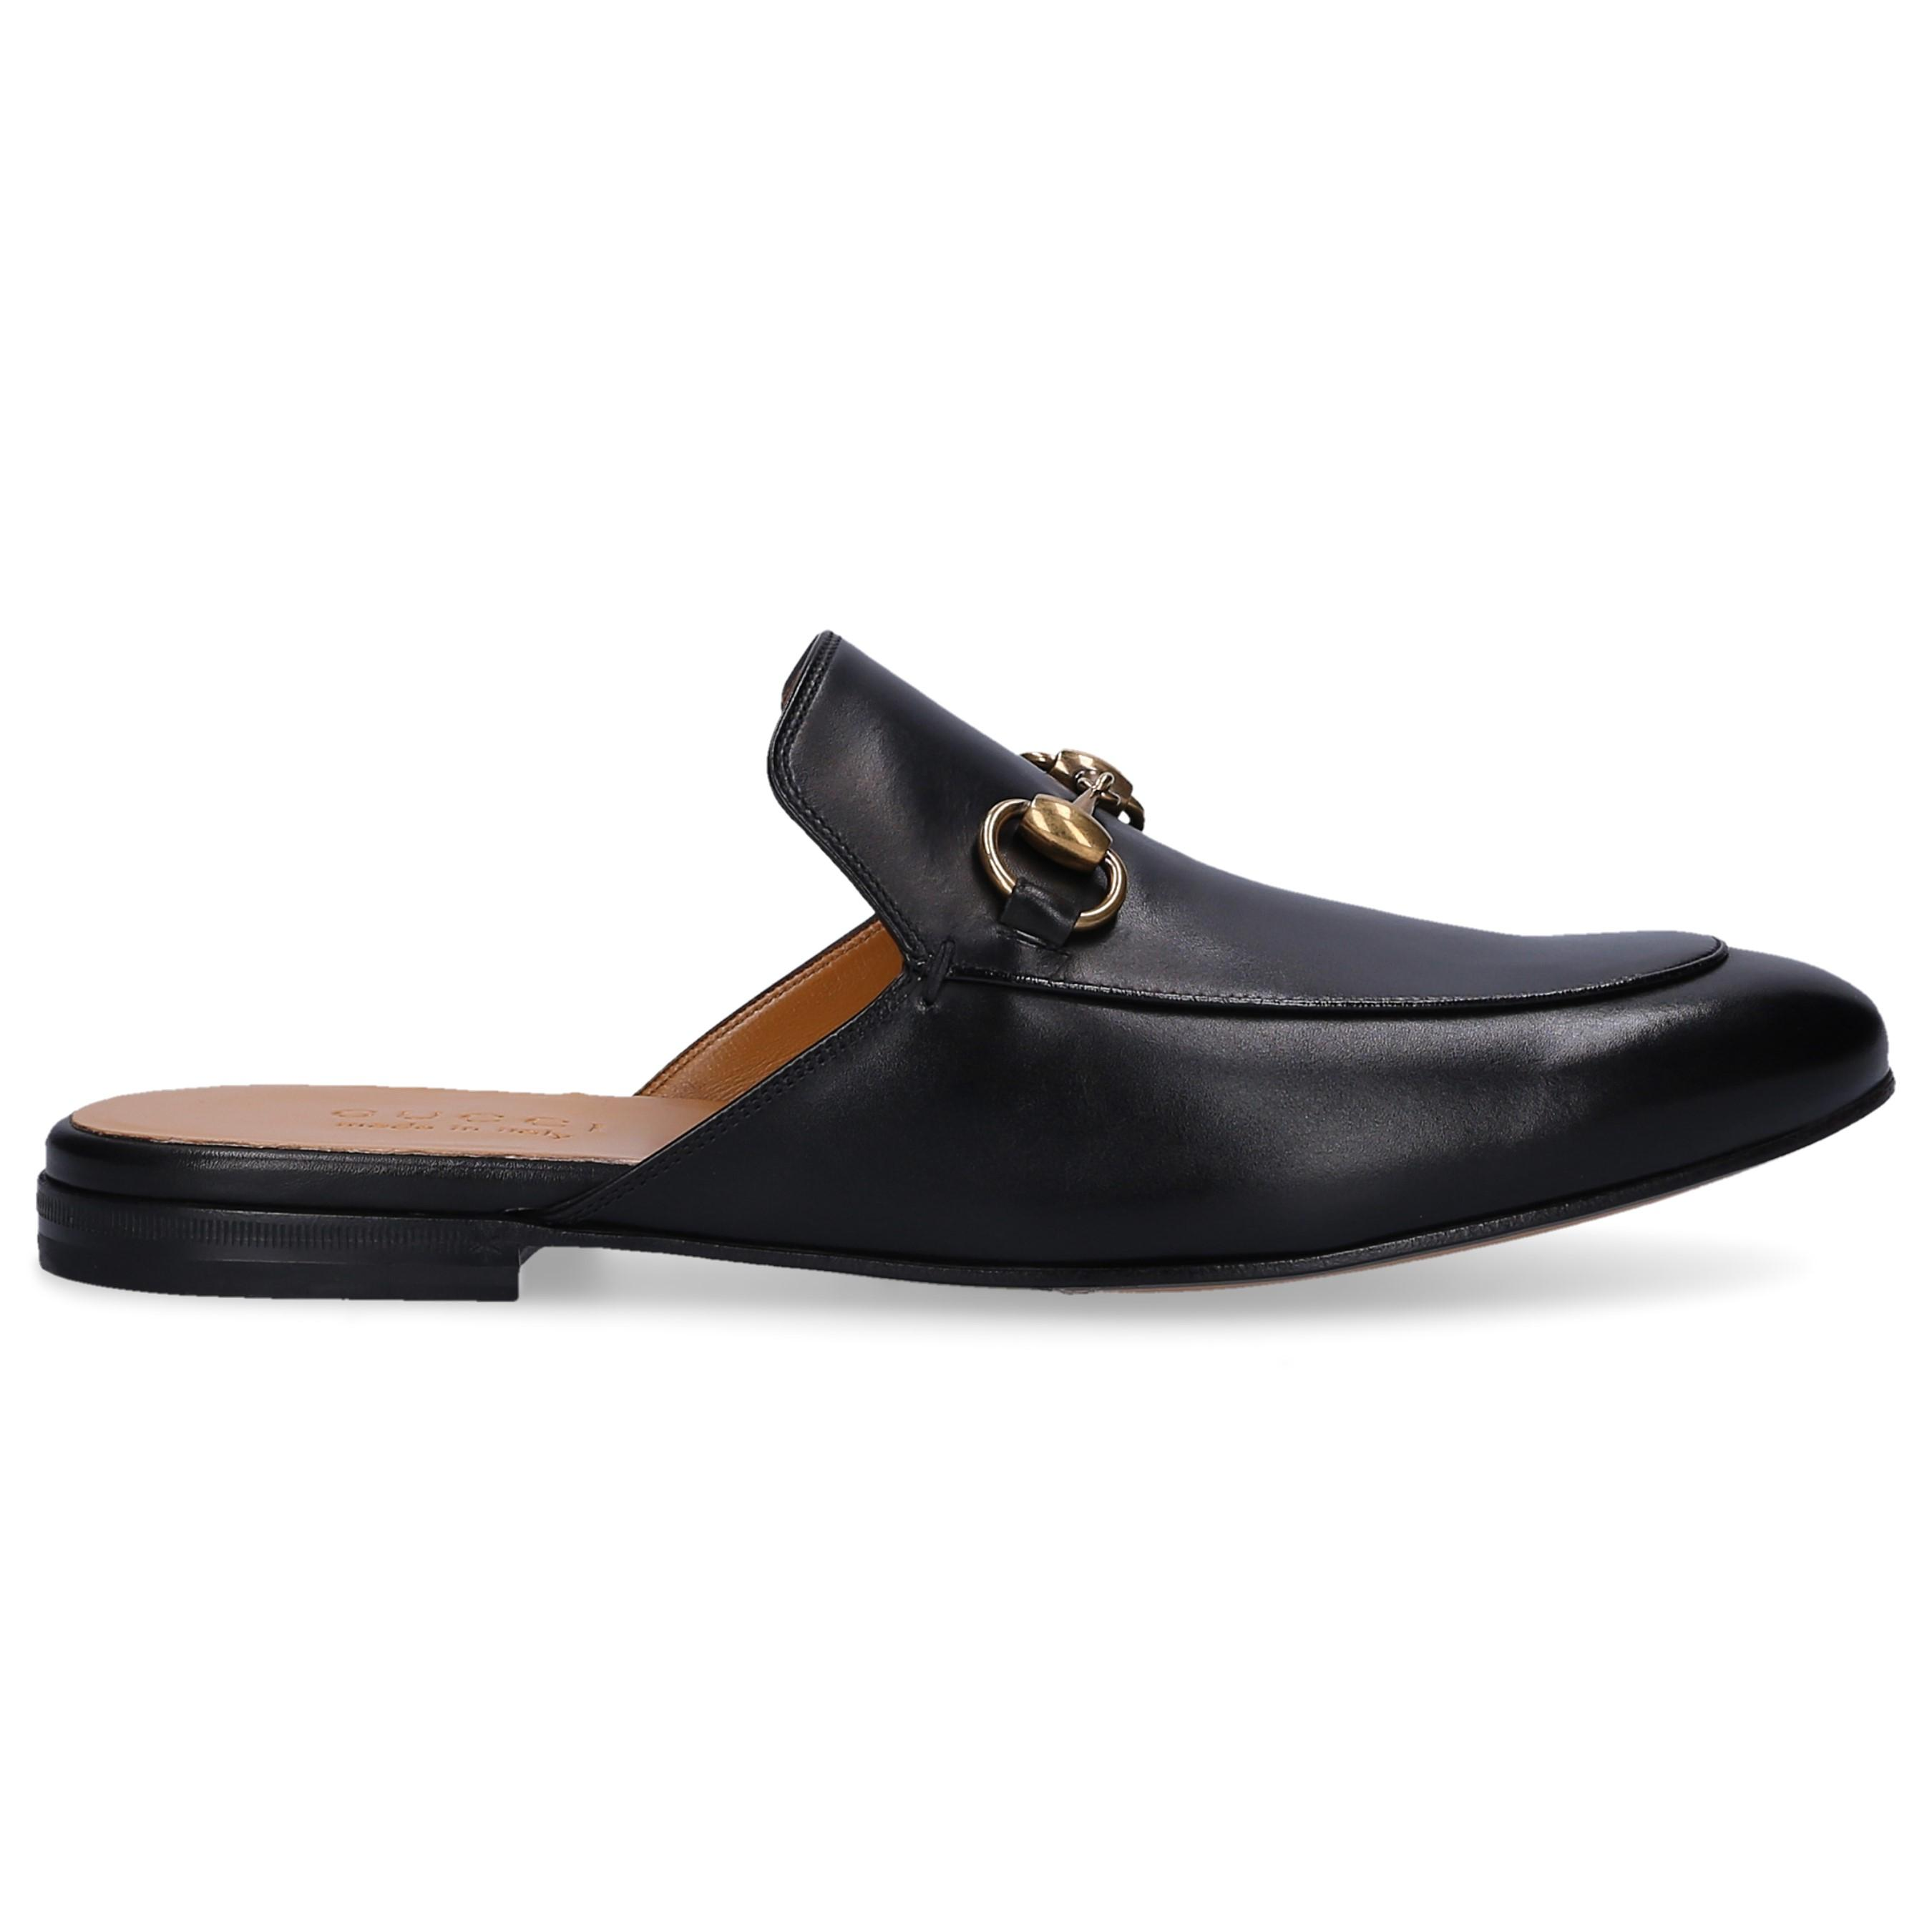 7abb5a4d6 Lyst - Gucci Leather Horsebit Slippers in Black for Men